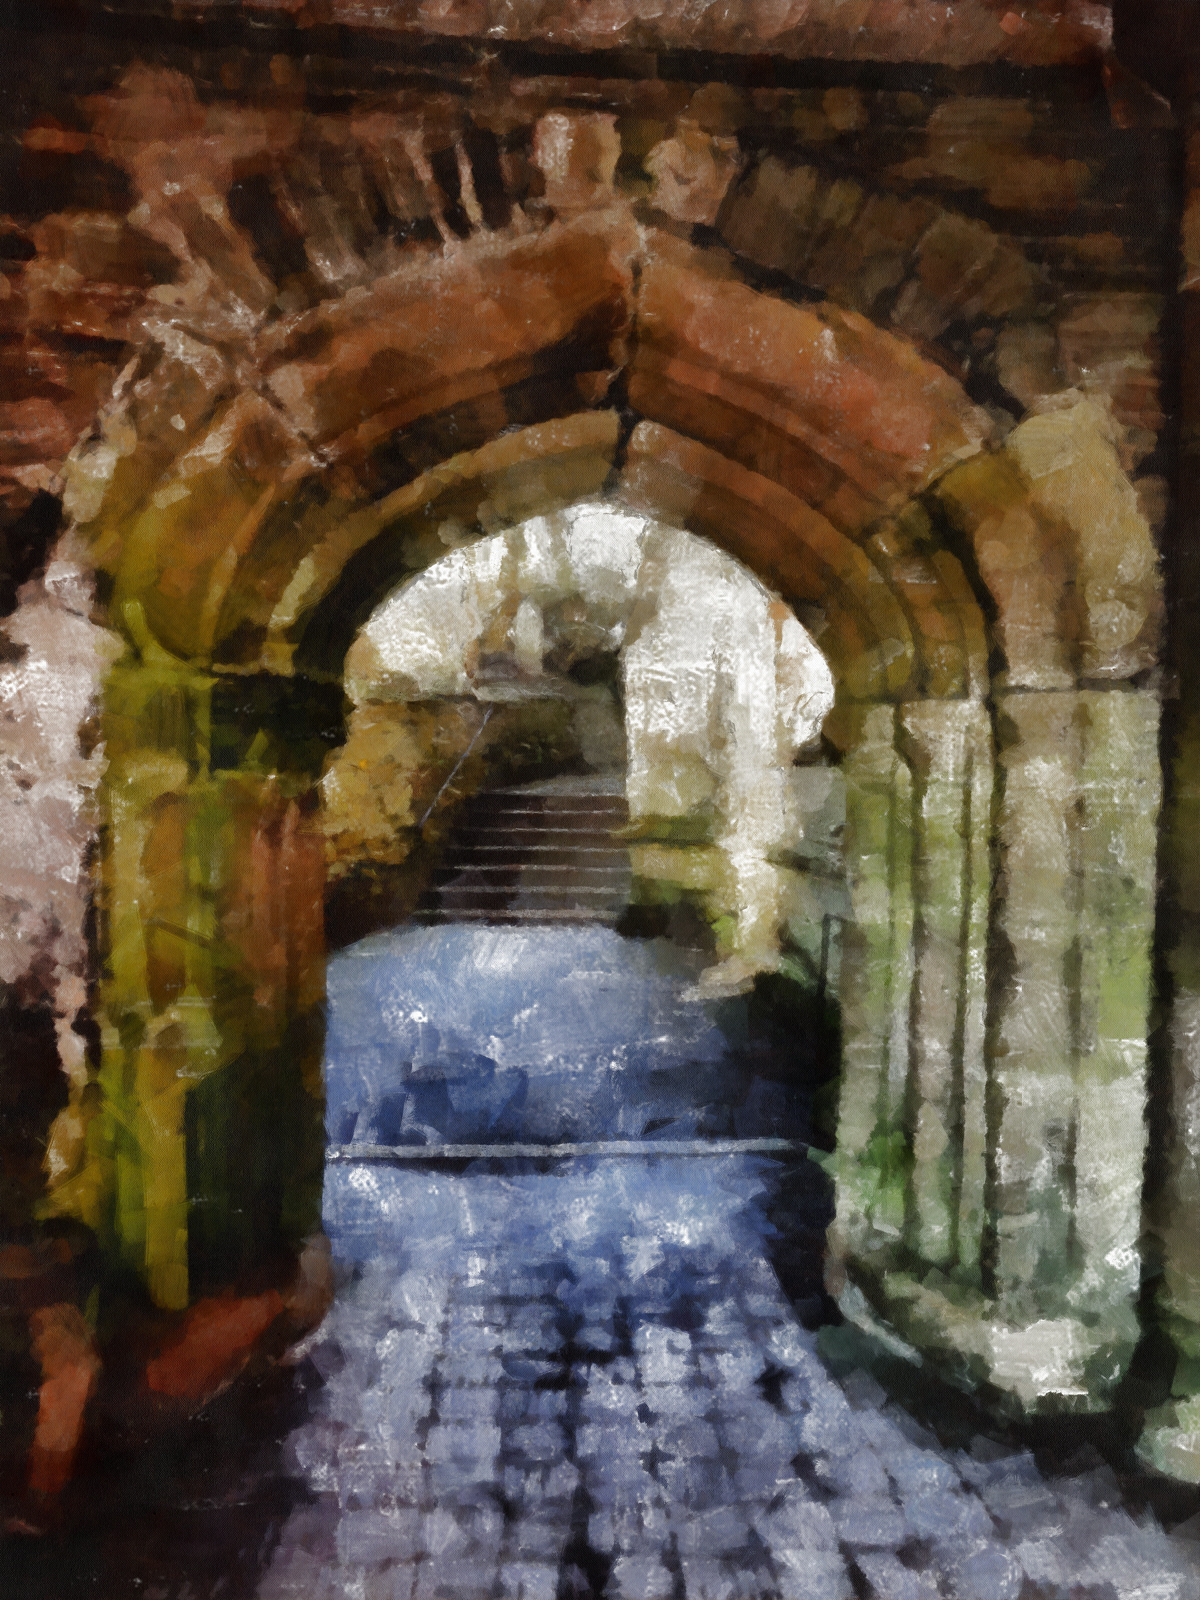 Church Archway, Arch, Architecture, Archway, Art, HQ Photo